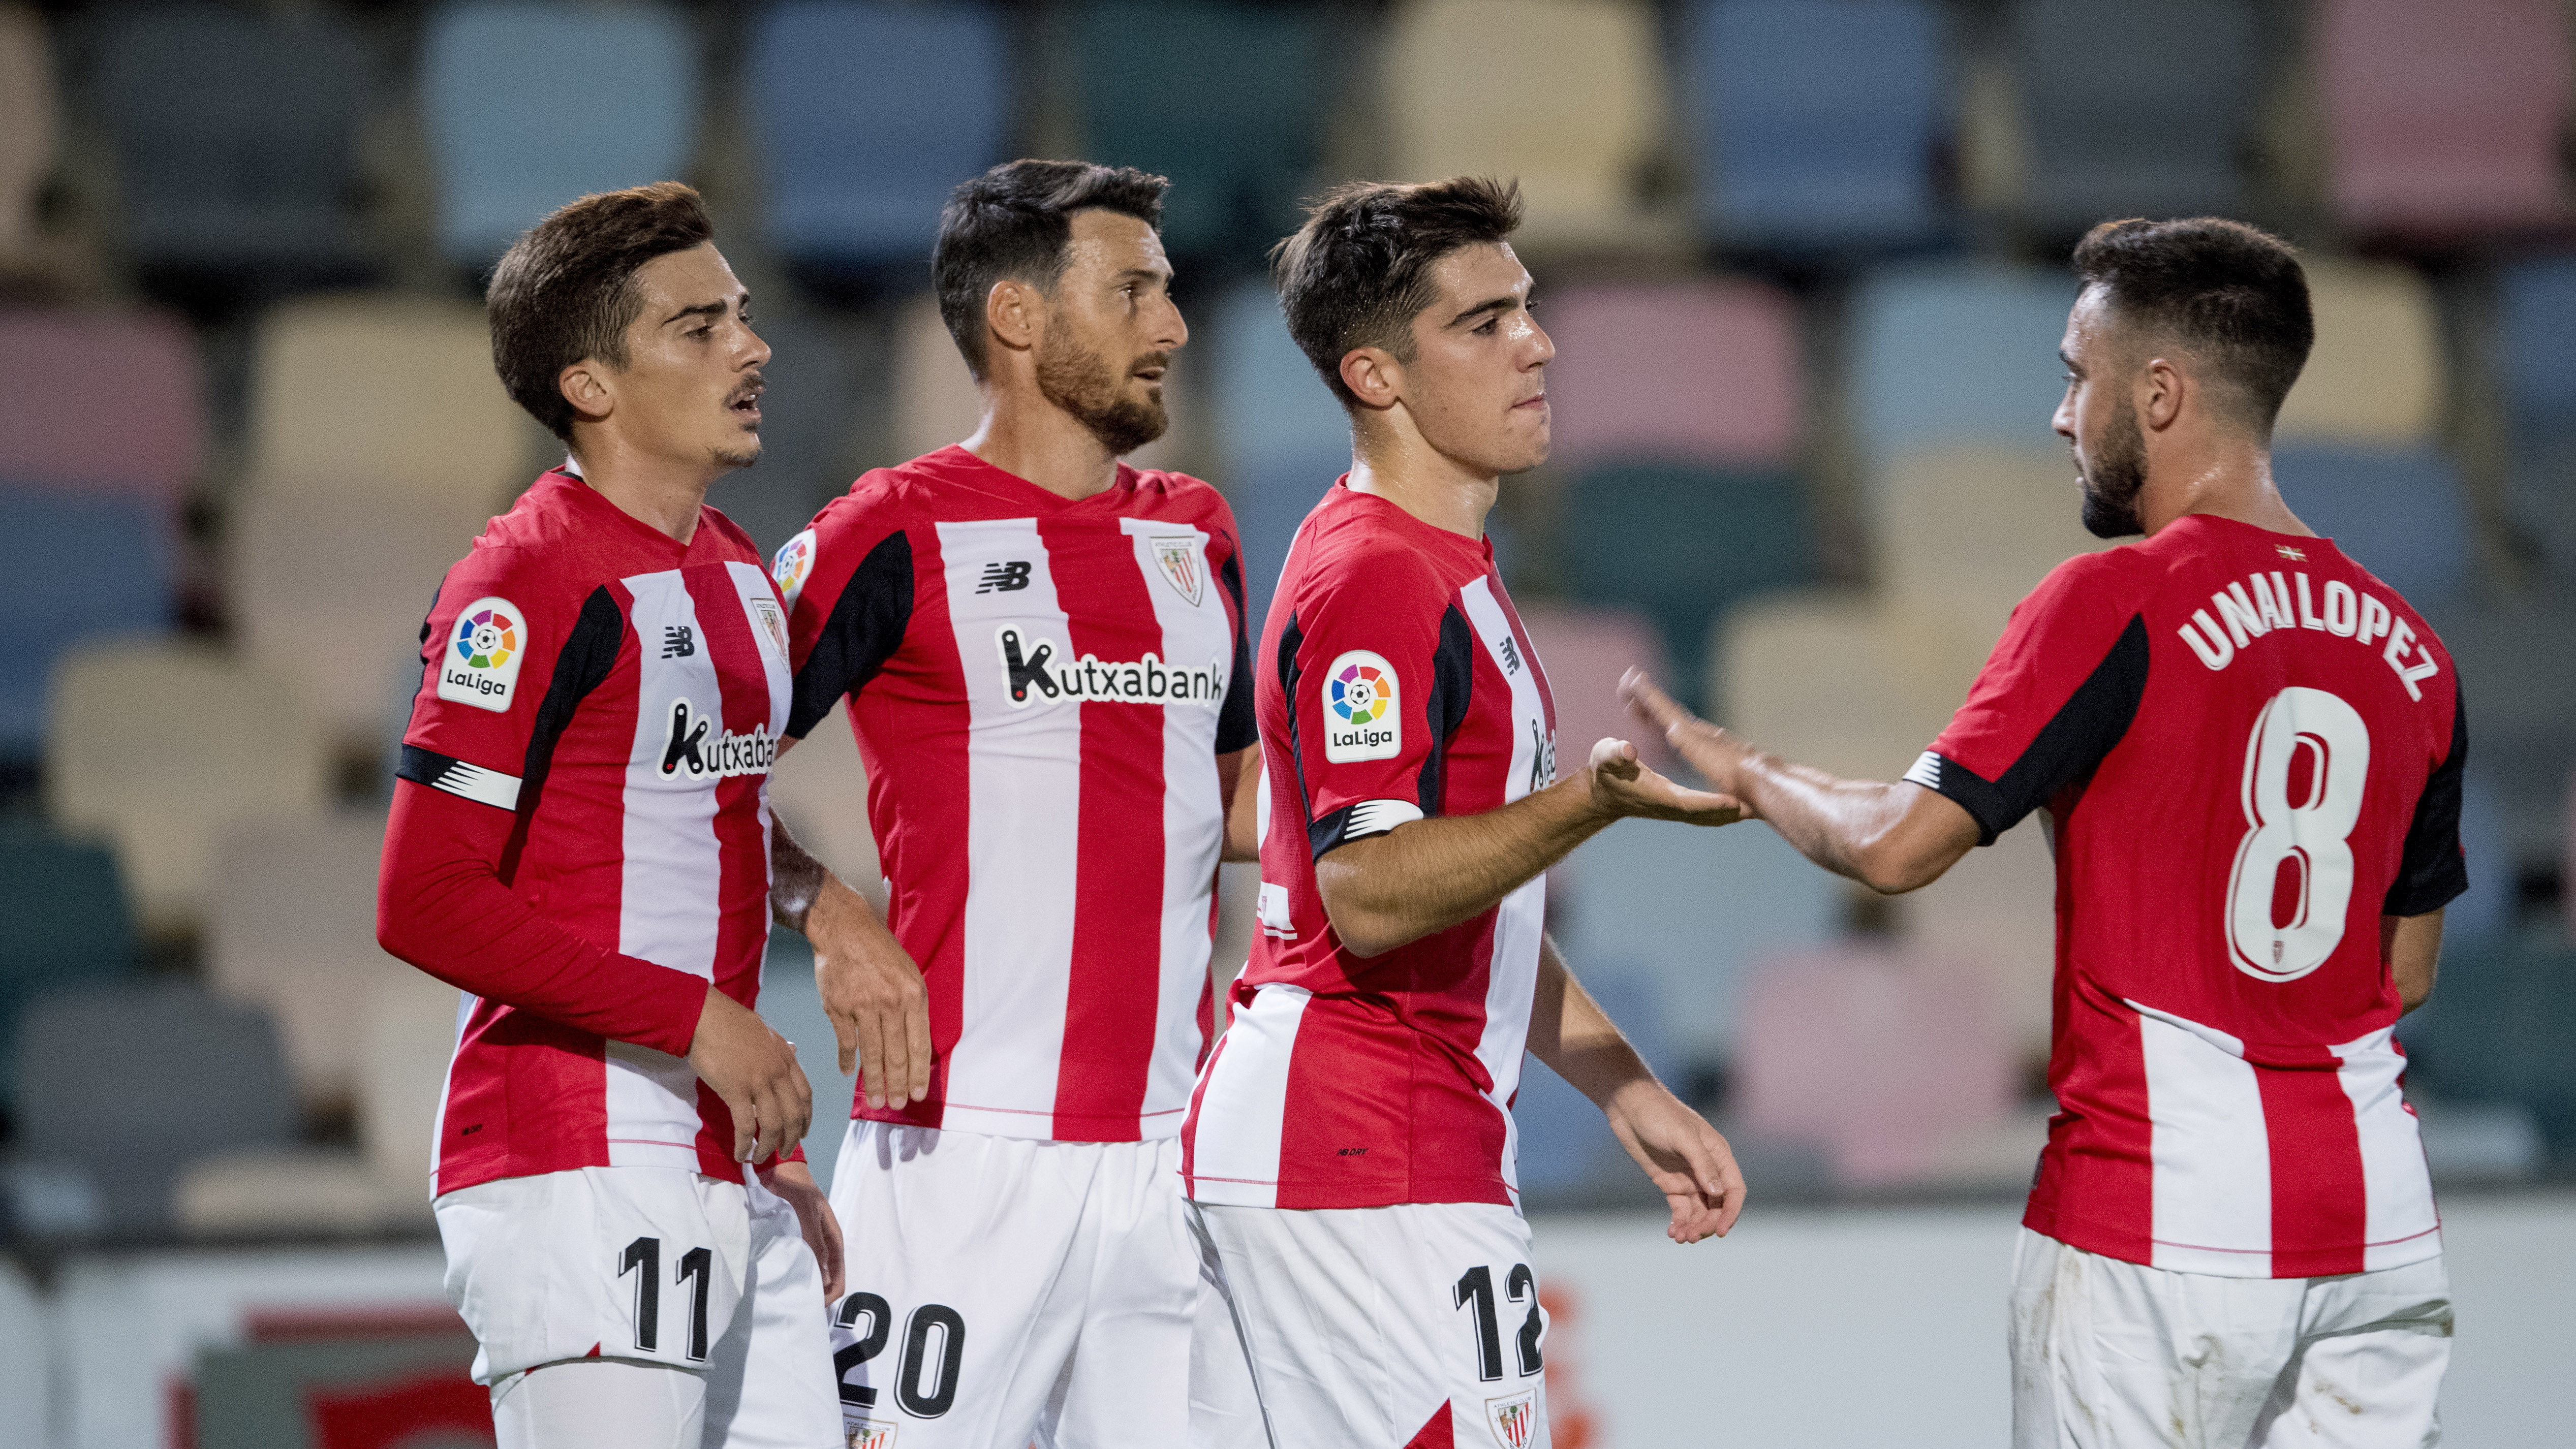 L'Athletic gagne le triangulaire de Barakaldo